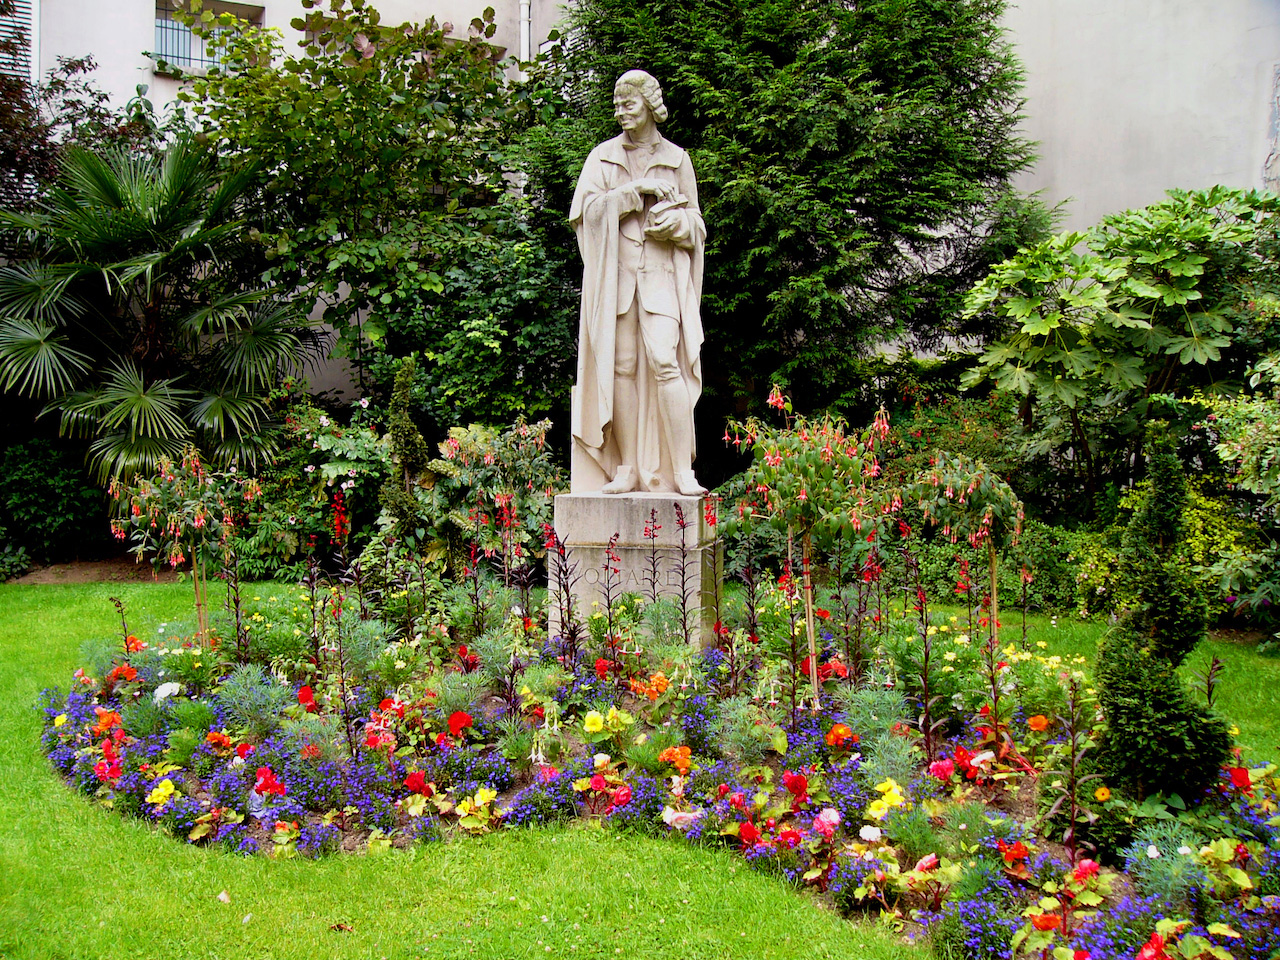 Statue of Voltaire placed in the middle of a bed of flowers in bloom.